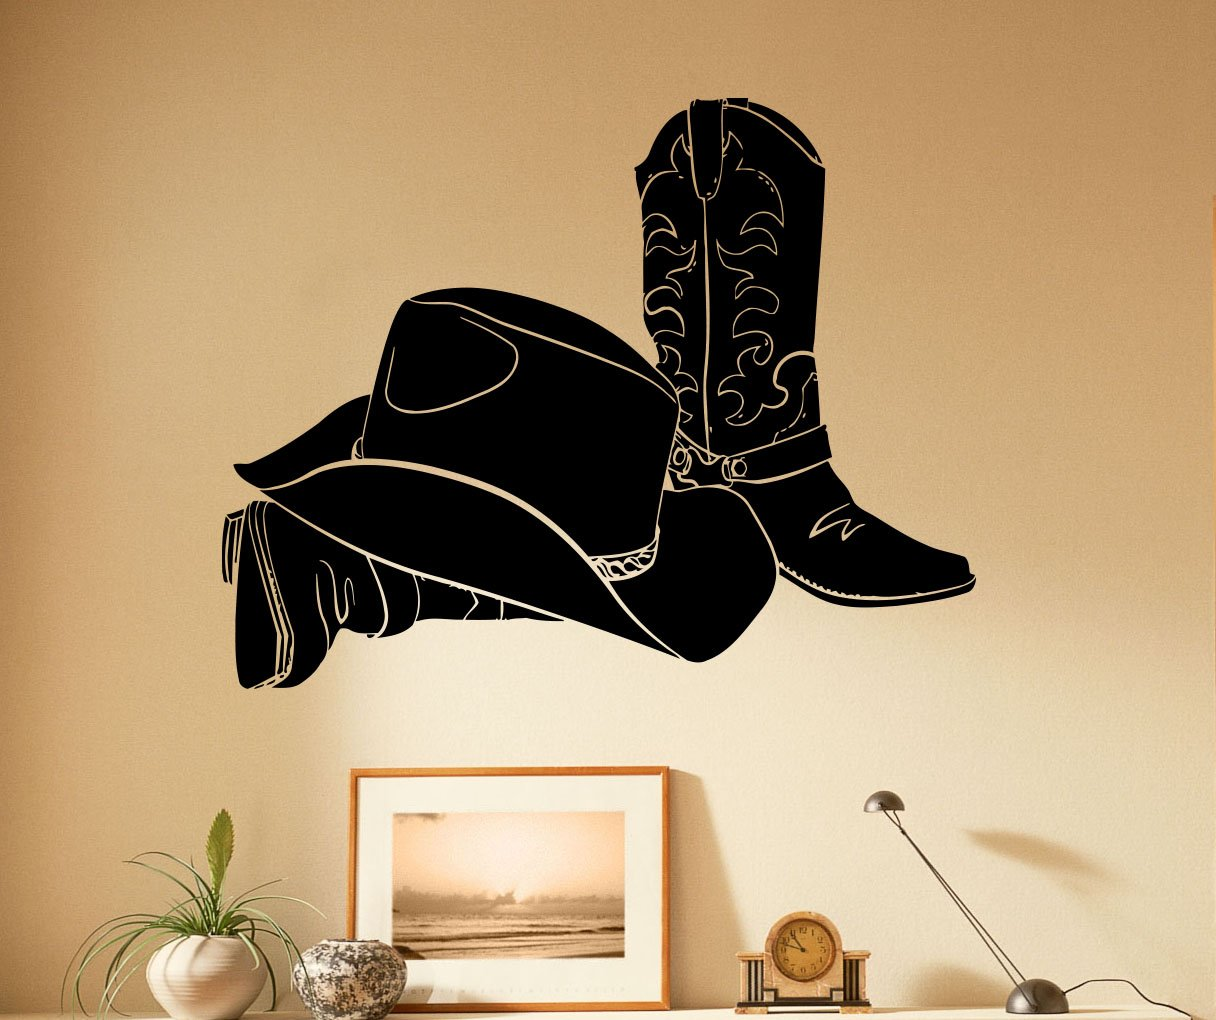 Cowboy wall vinyl decal murals sticker western bedroom art home decor 5cwb01 amazon com